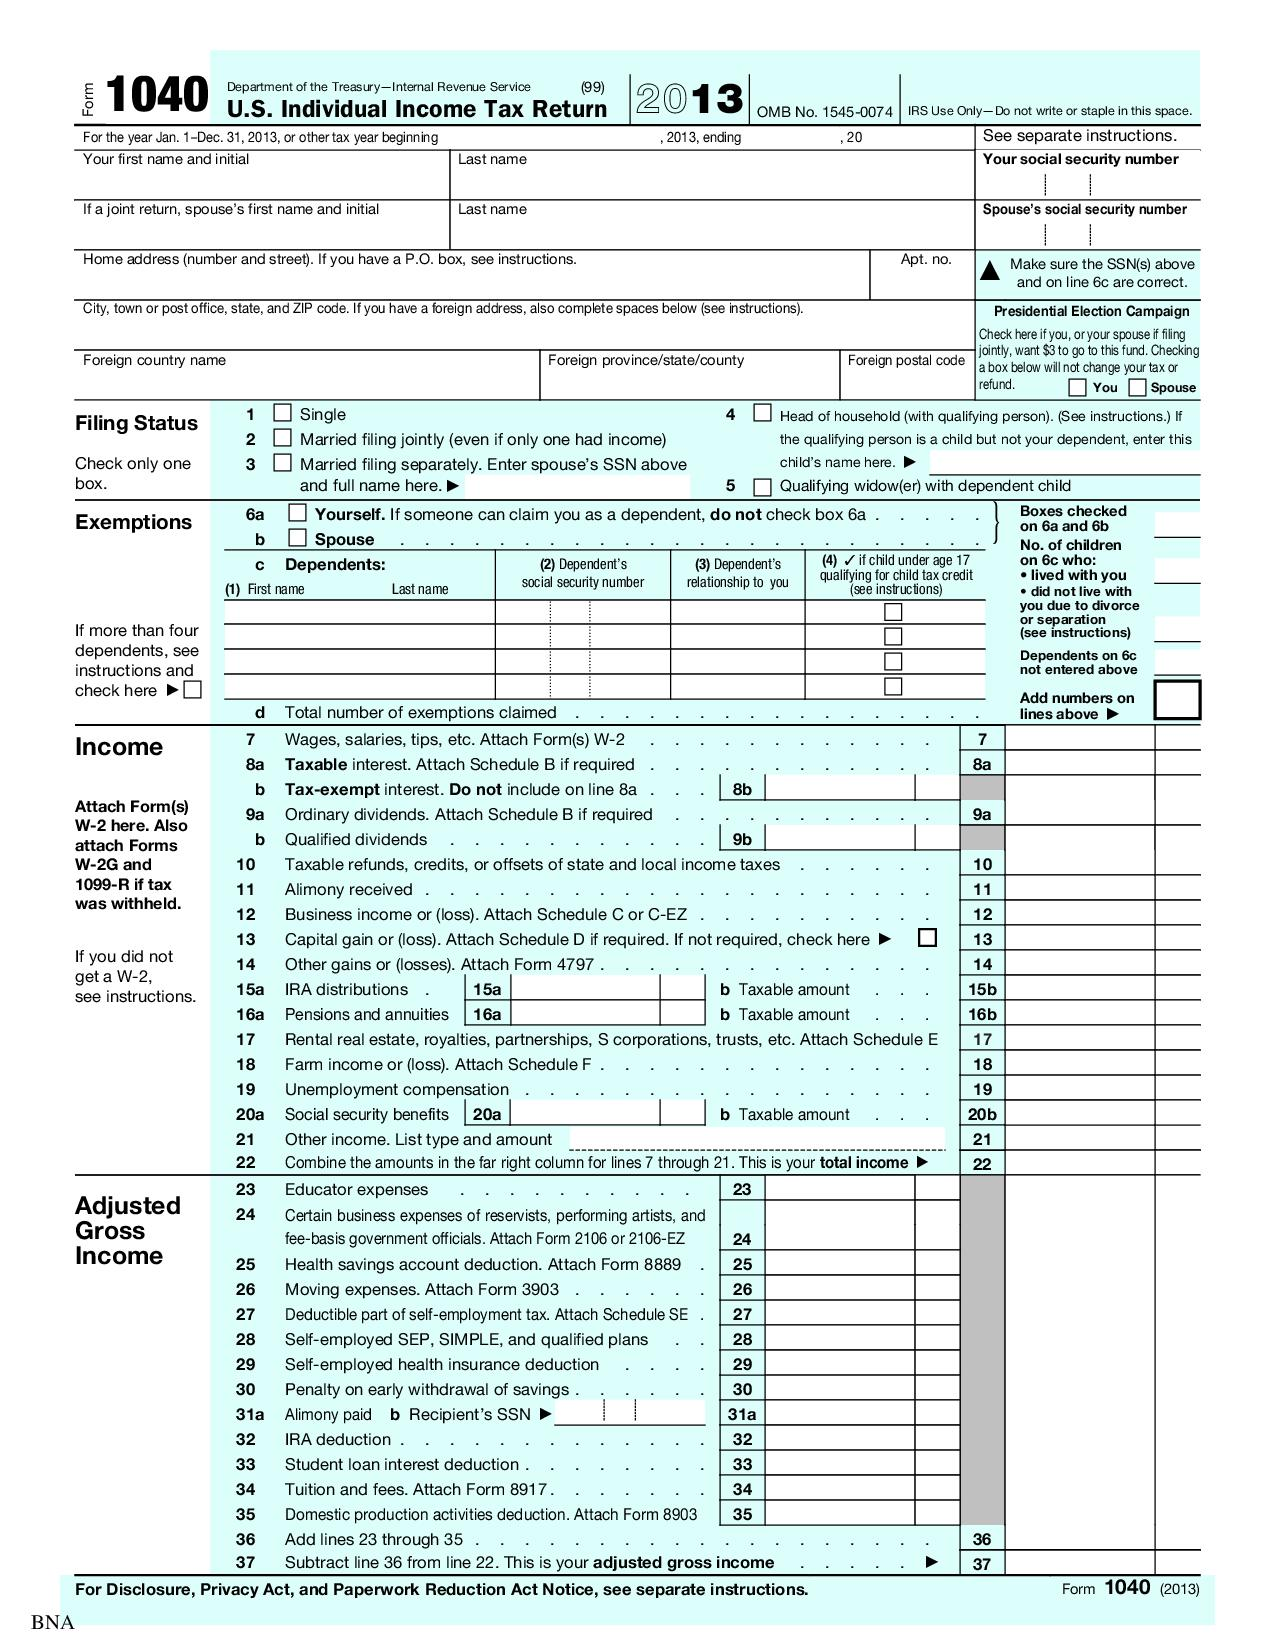 Worksheets Qualified Dividends And Capital Gain Tax Worksheet 1040 u s individual income tax return with schedule d